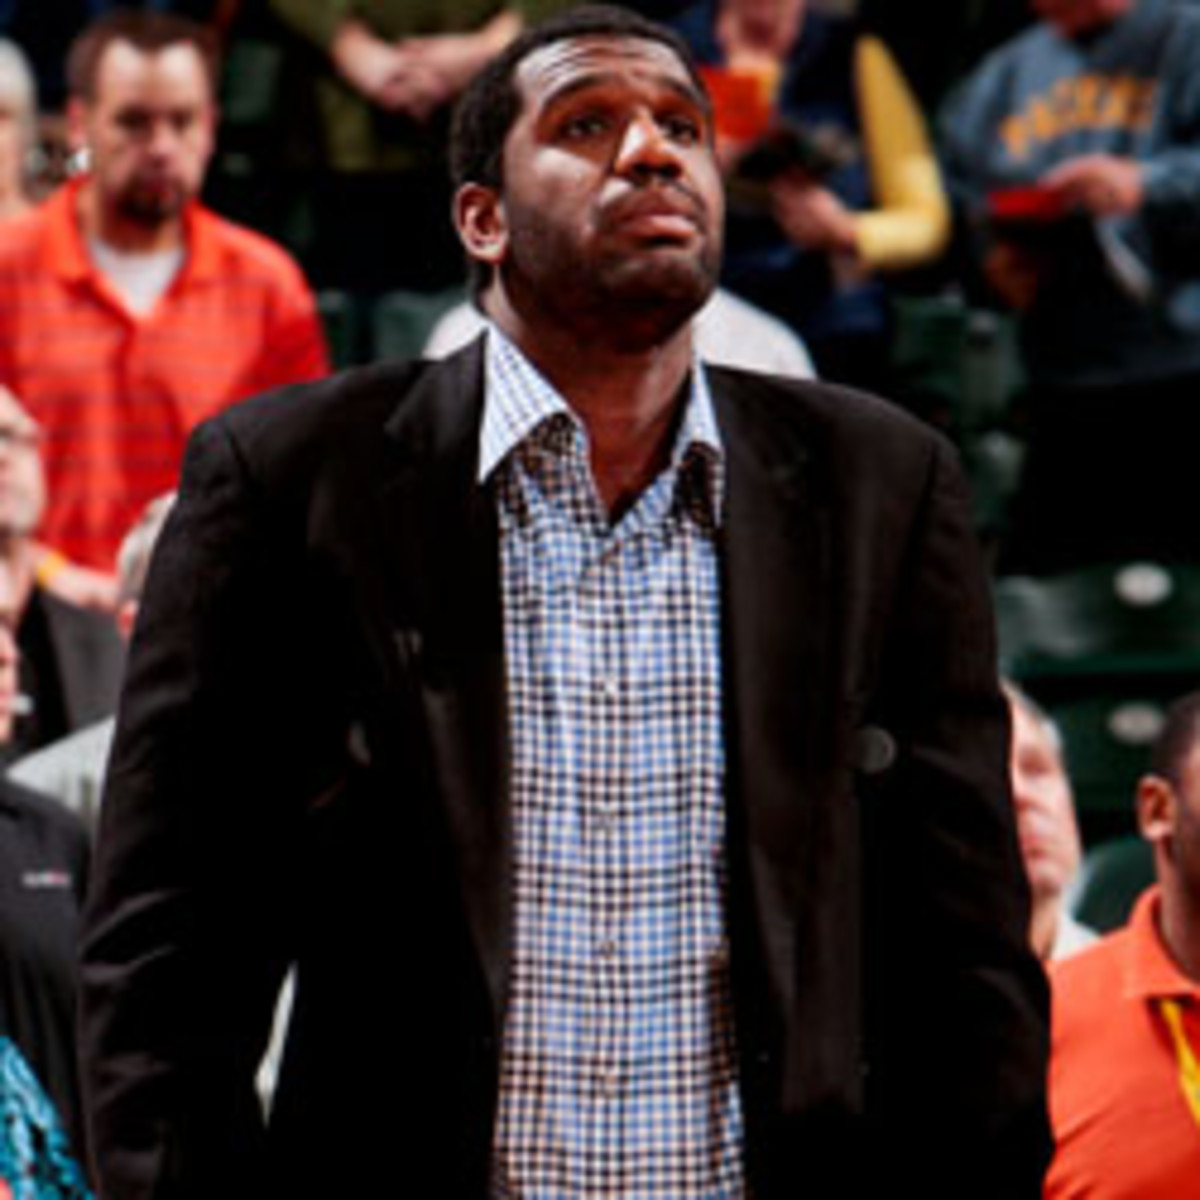 Greg Oden met with the Celtics on Saturday. (Ron Hoskins/Getty Images)